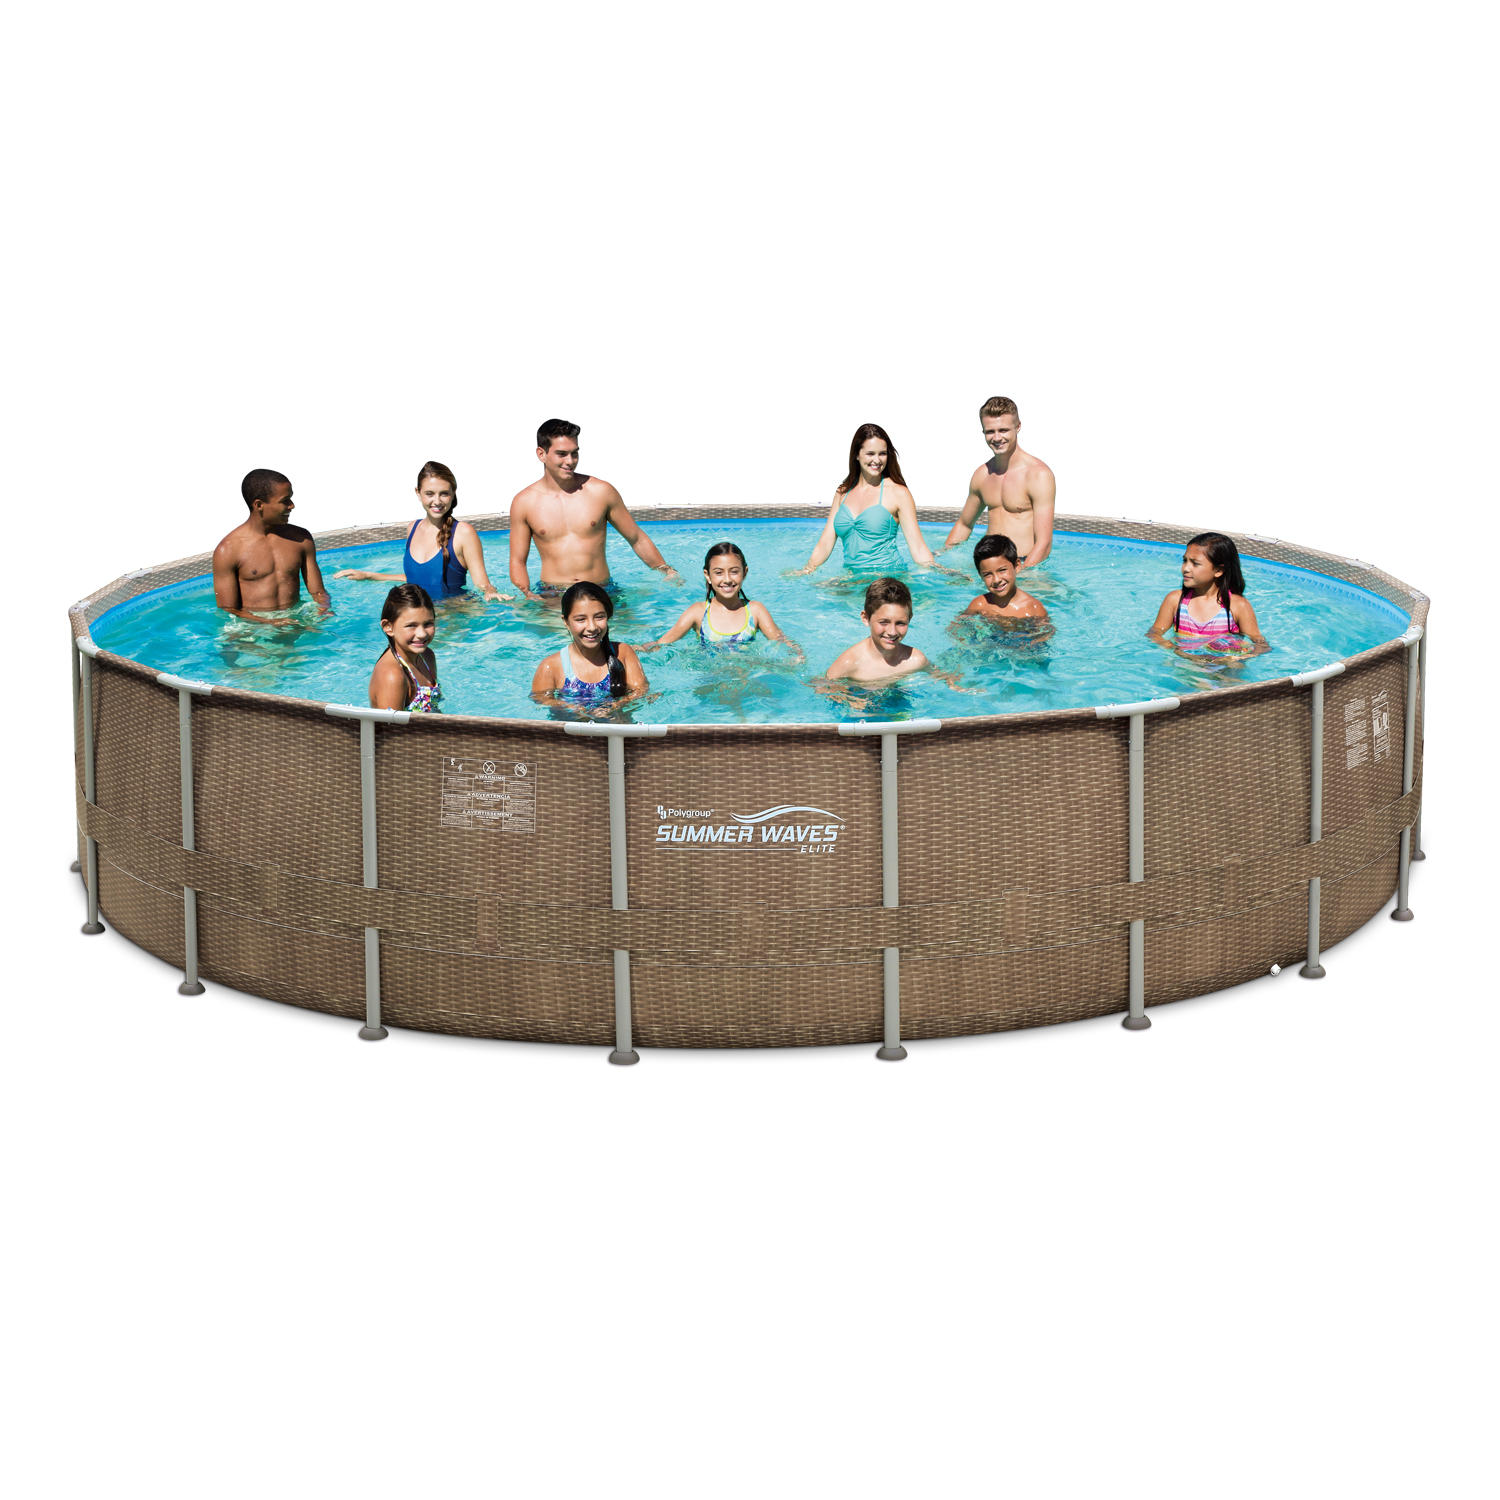 "Summer Waves 20' x 48"" Elite Frame Swimming Pool Set"